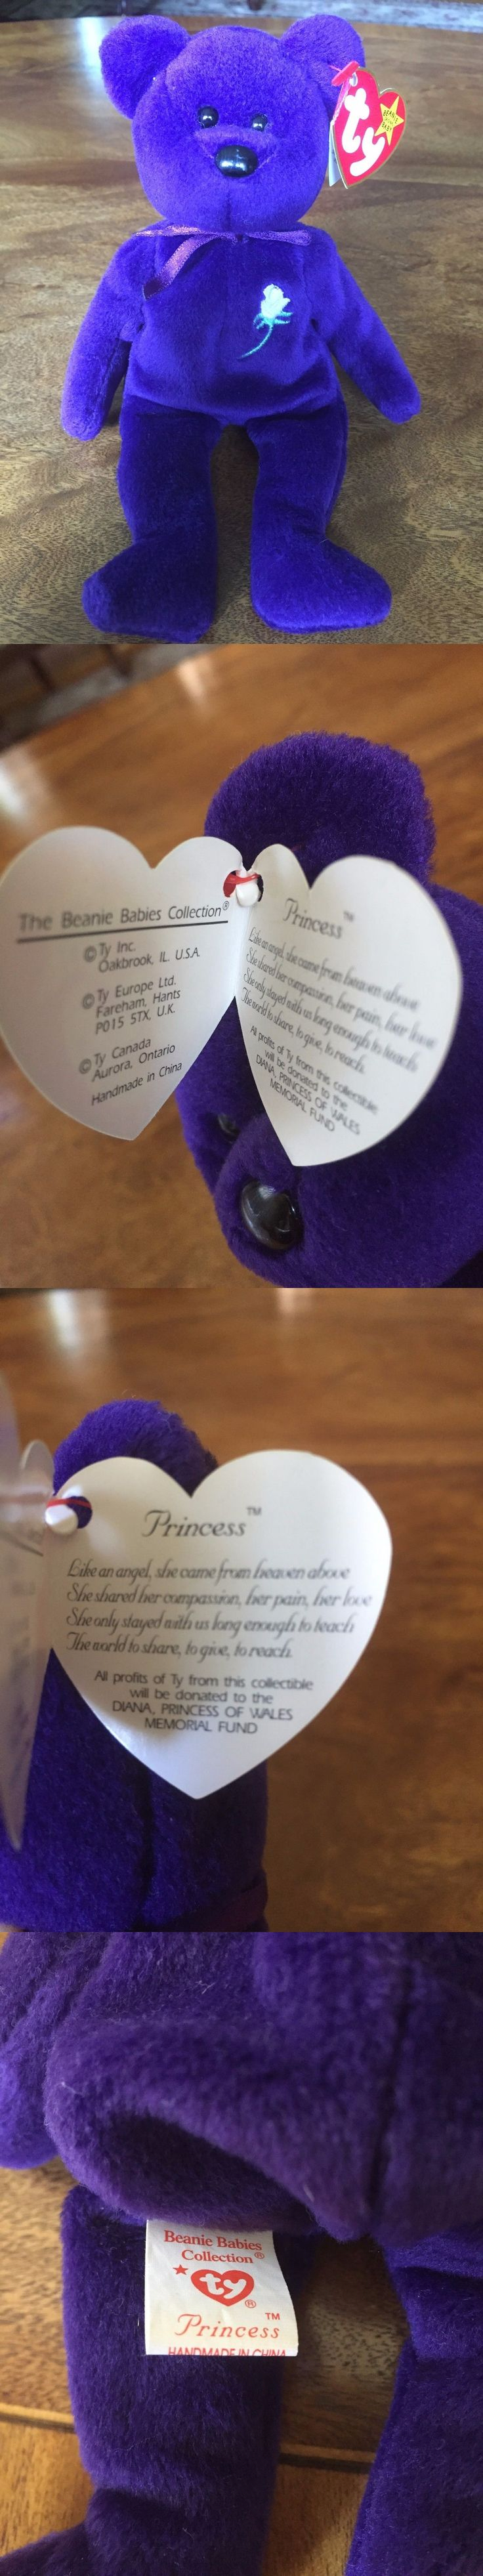 Retired 440: Princess Diana Beanie Baby 1St Edition Purple Pvc No Space Mint -> BUY IT NOW ONLY: $24250 on eBay!